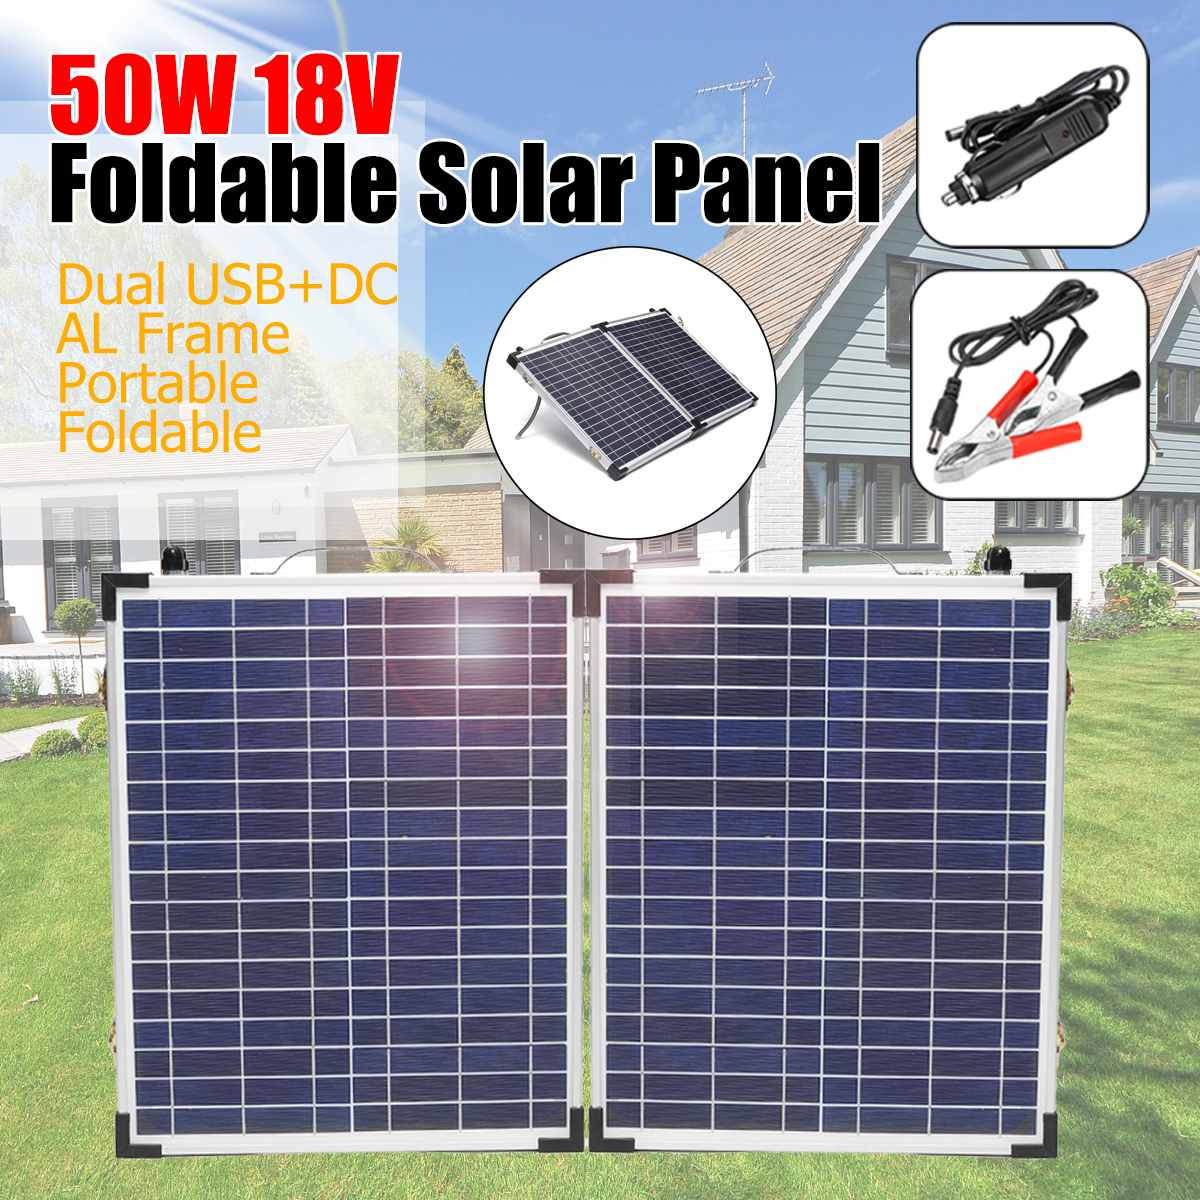 50W 18V Foldable Portable Solar Panel Monocrystalline cells battery charger with Car Charger for Outdoor Camping Waterproof|Solar Cells| |  -